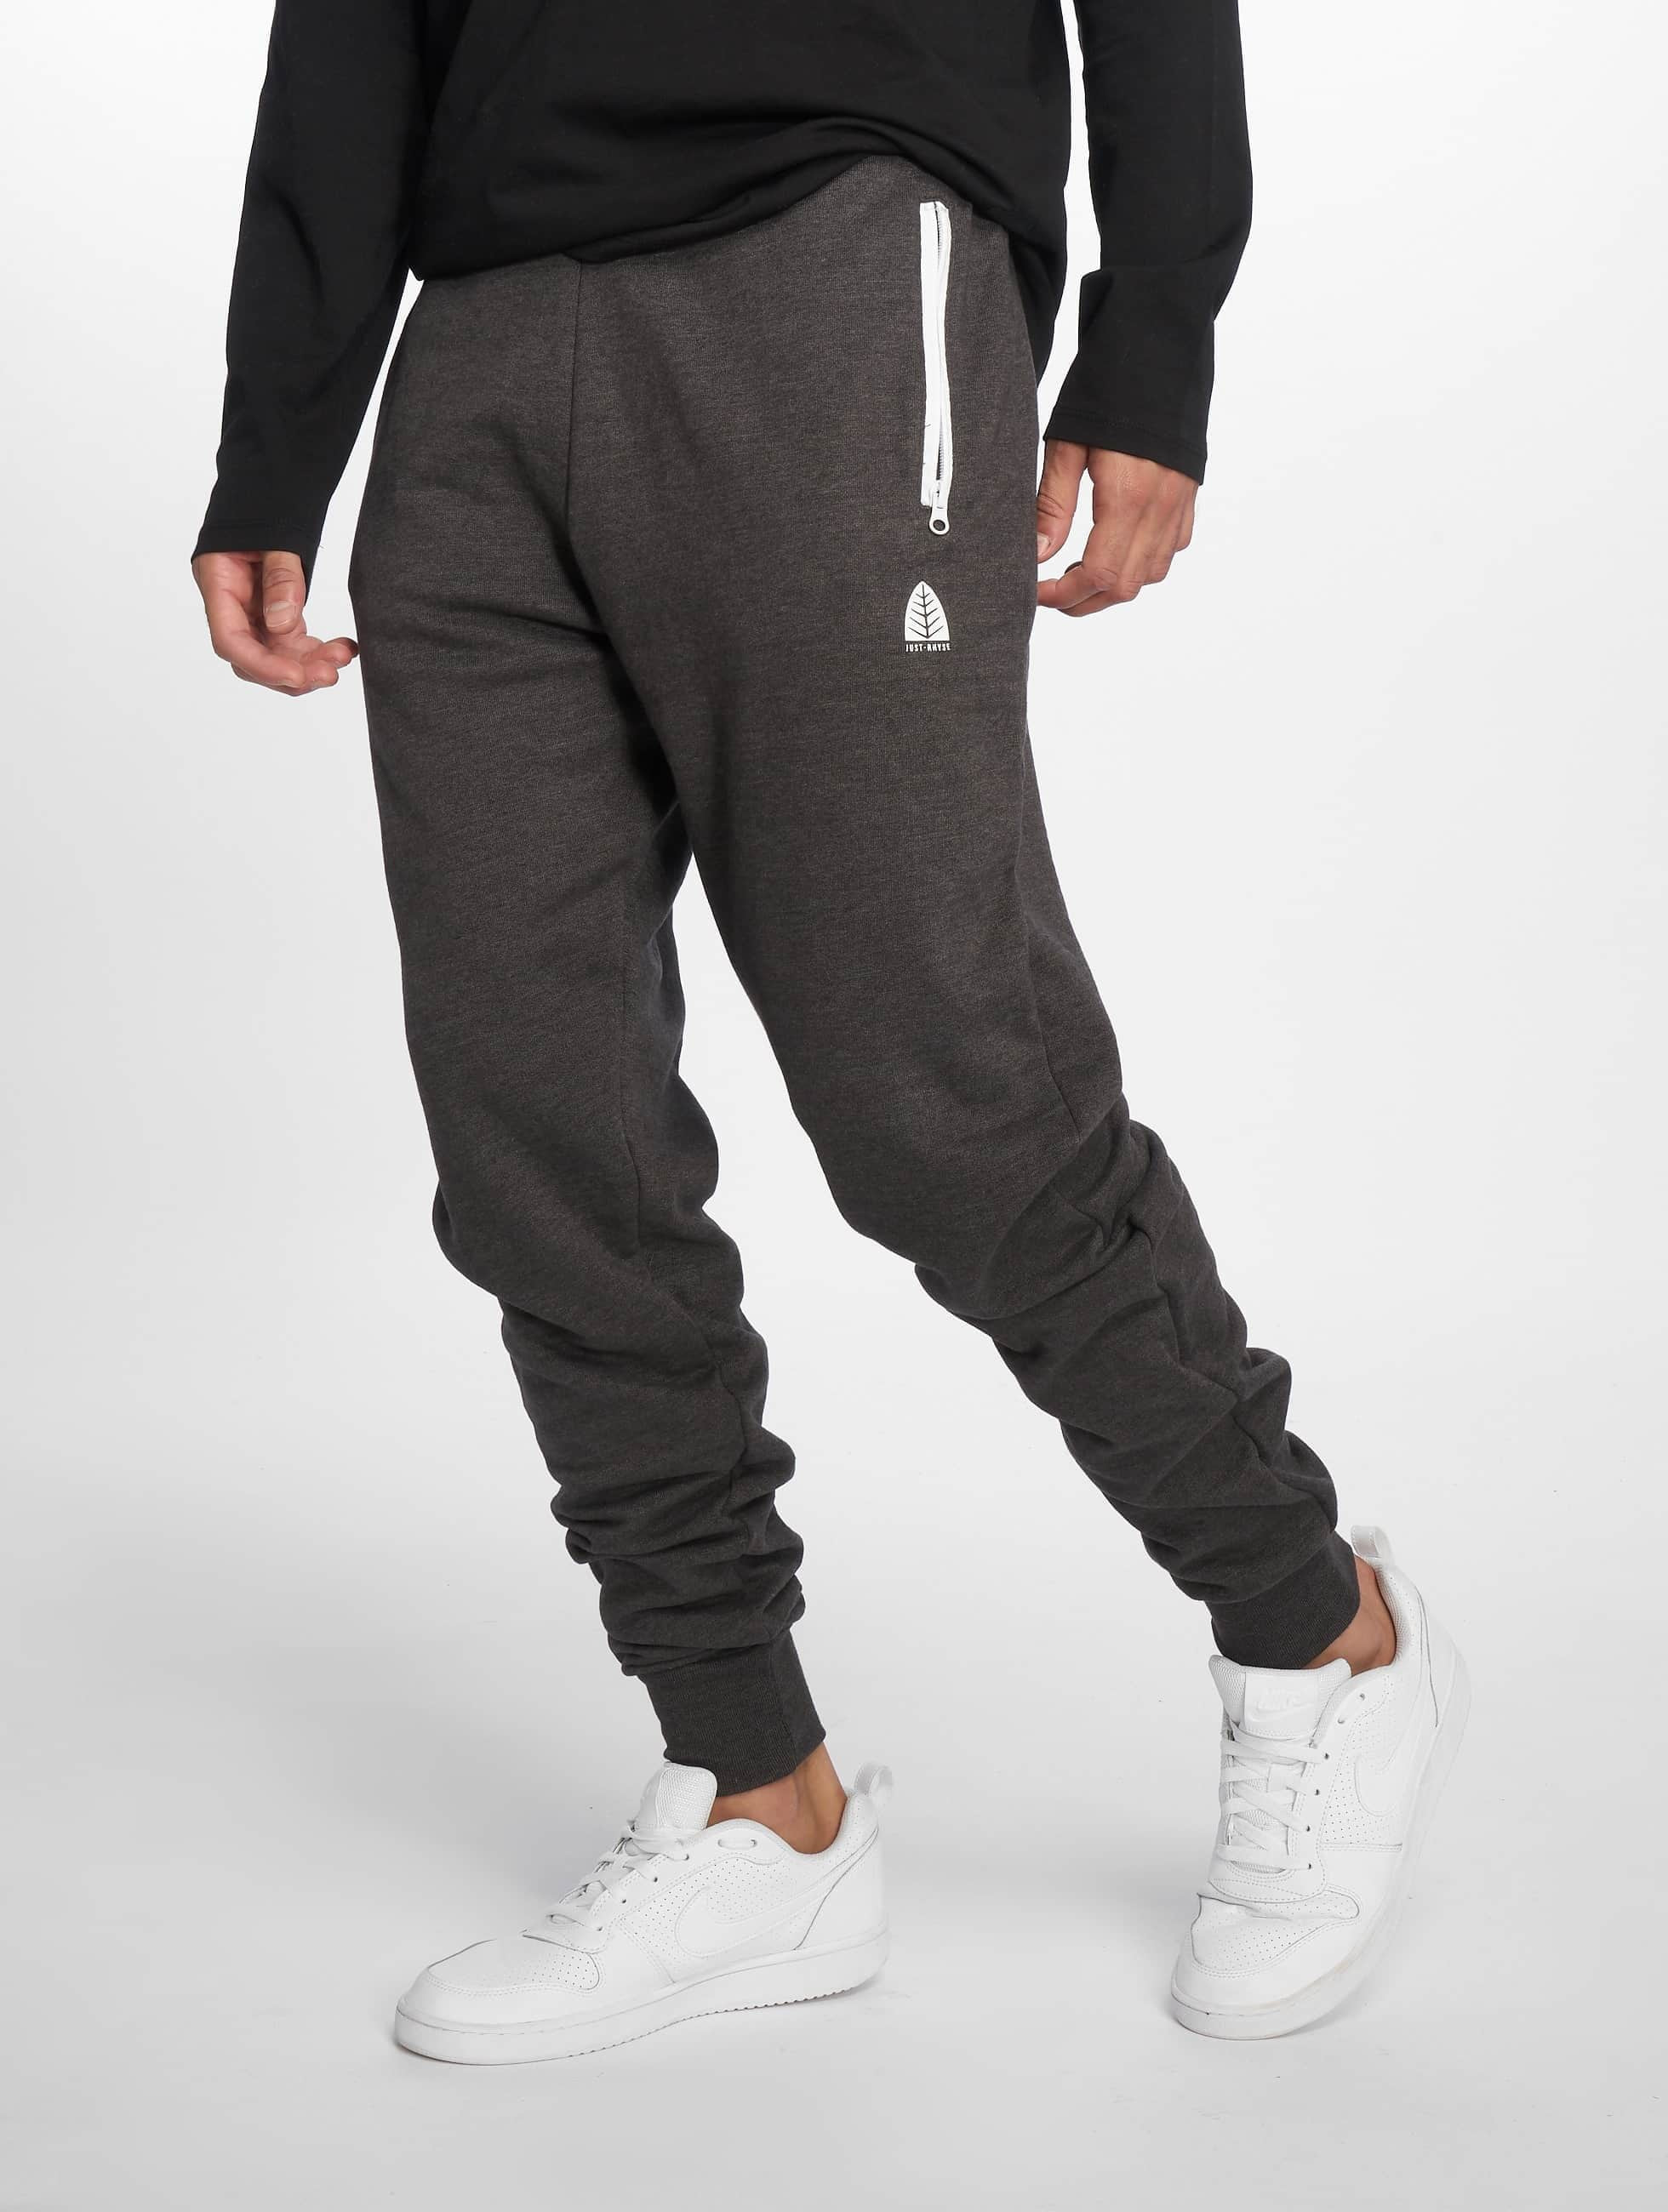 Just Rhyse / Sweat Pant Momo in grey S